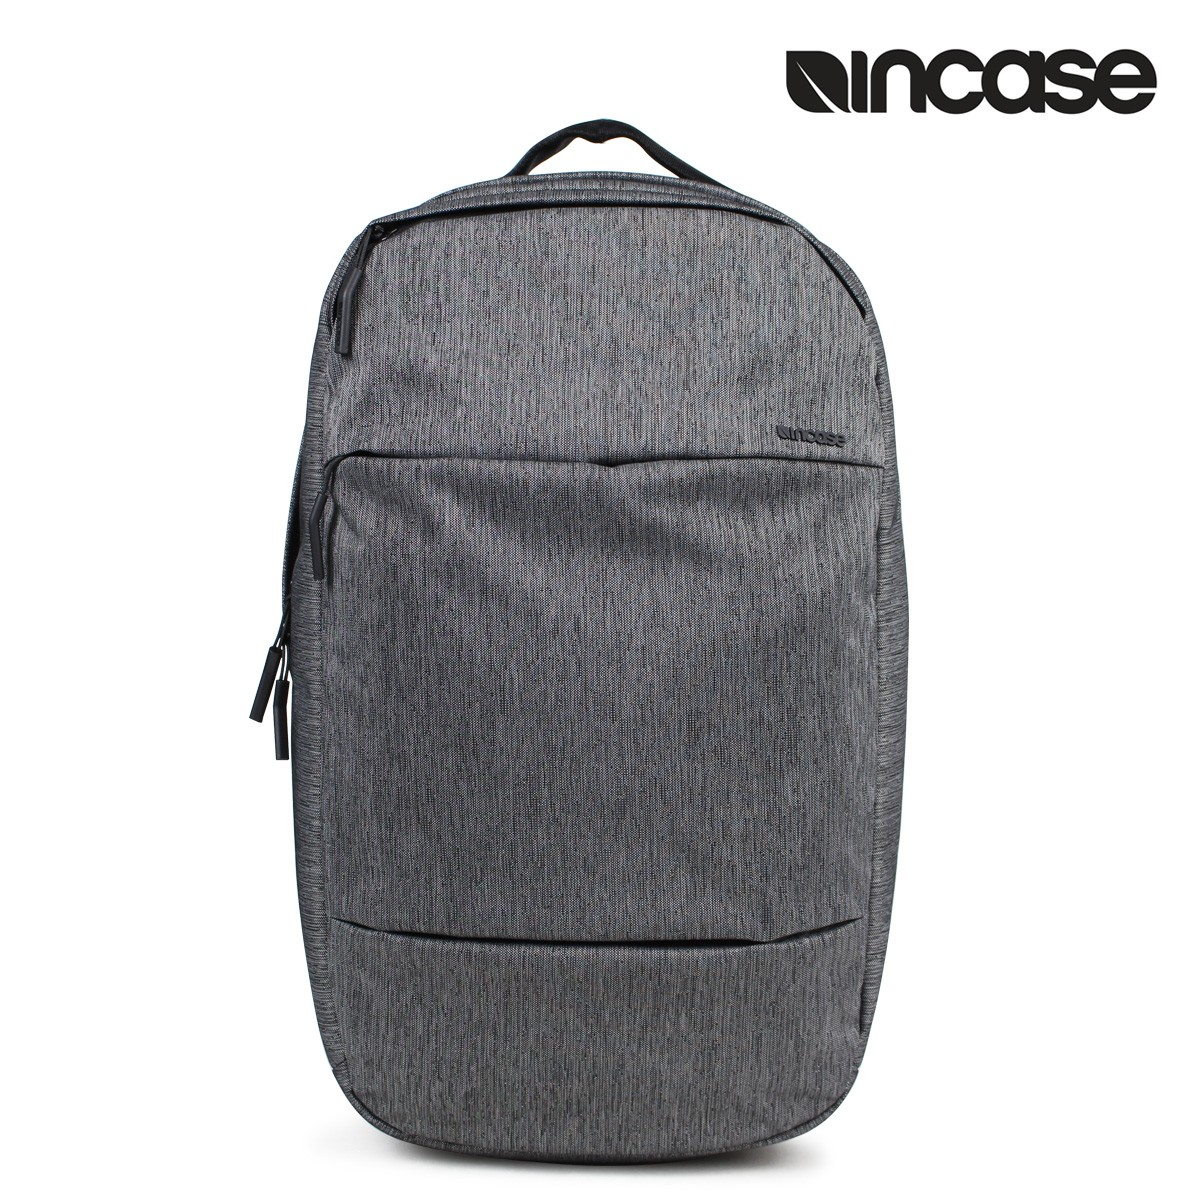 INCASE インケース リュック バックパック 15L CITY COLLECTION COMPACT BACKPACK メンズ レディース グレー CL55571 [1/17 新入荷]